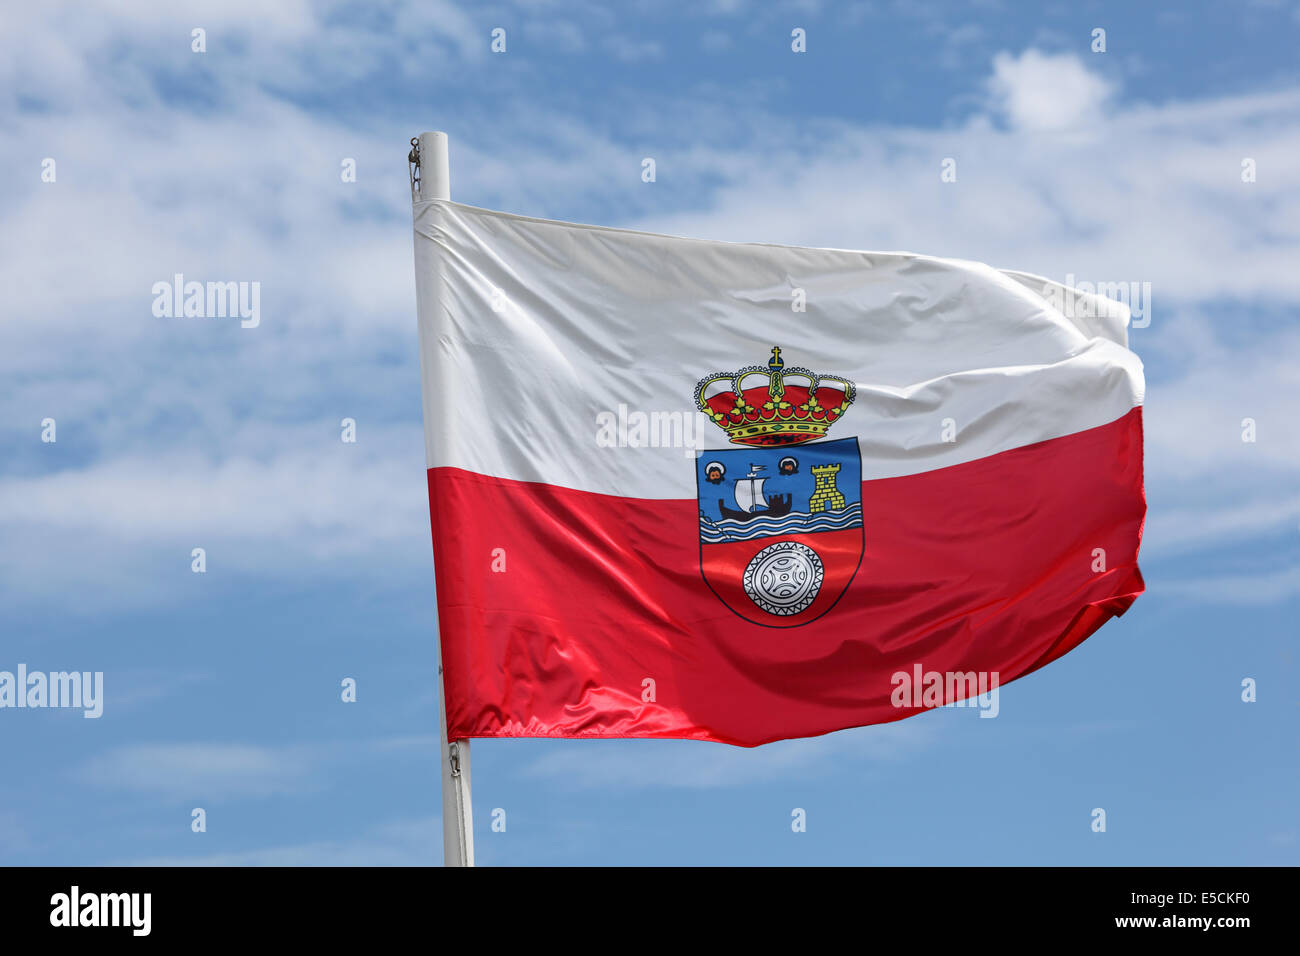 Flag of Cantabria, Spain - Stock Image